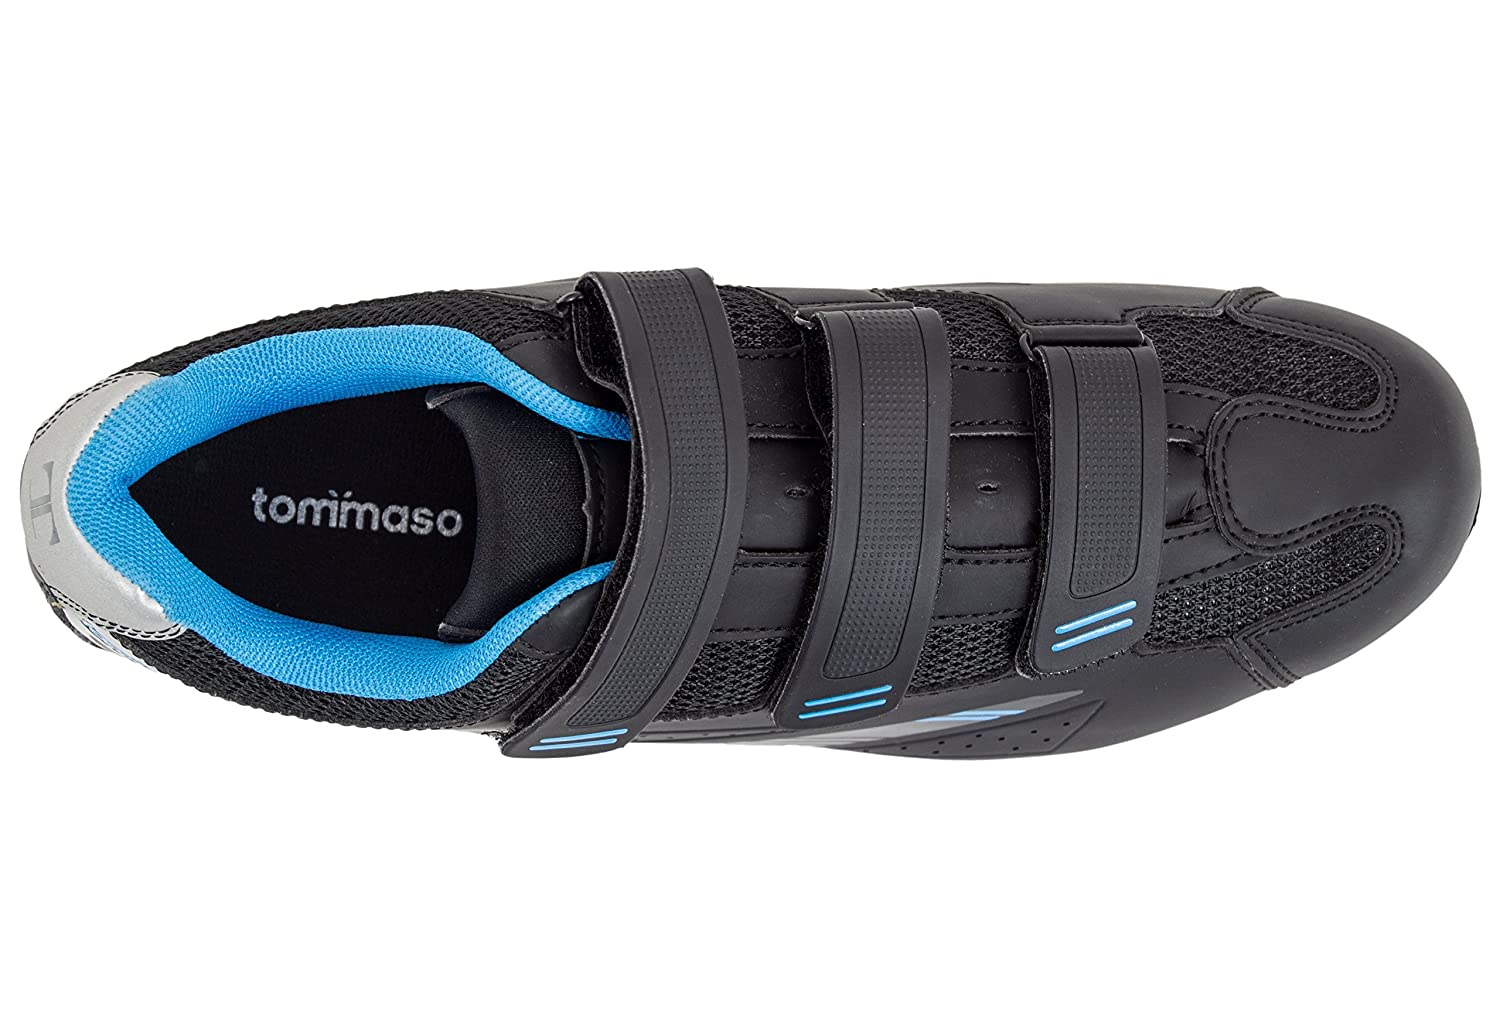 Tommaso Pista 100 Women's Spin Class Ready Cycling Shoe with Compatable Cleat - Black/Blue B07665WCFW 38 EU/ 7.5 US W|Spd